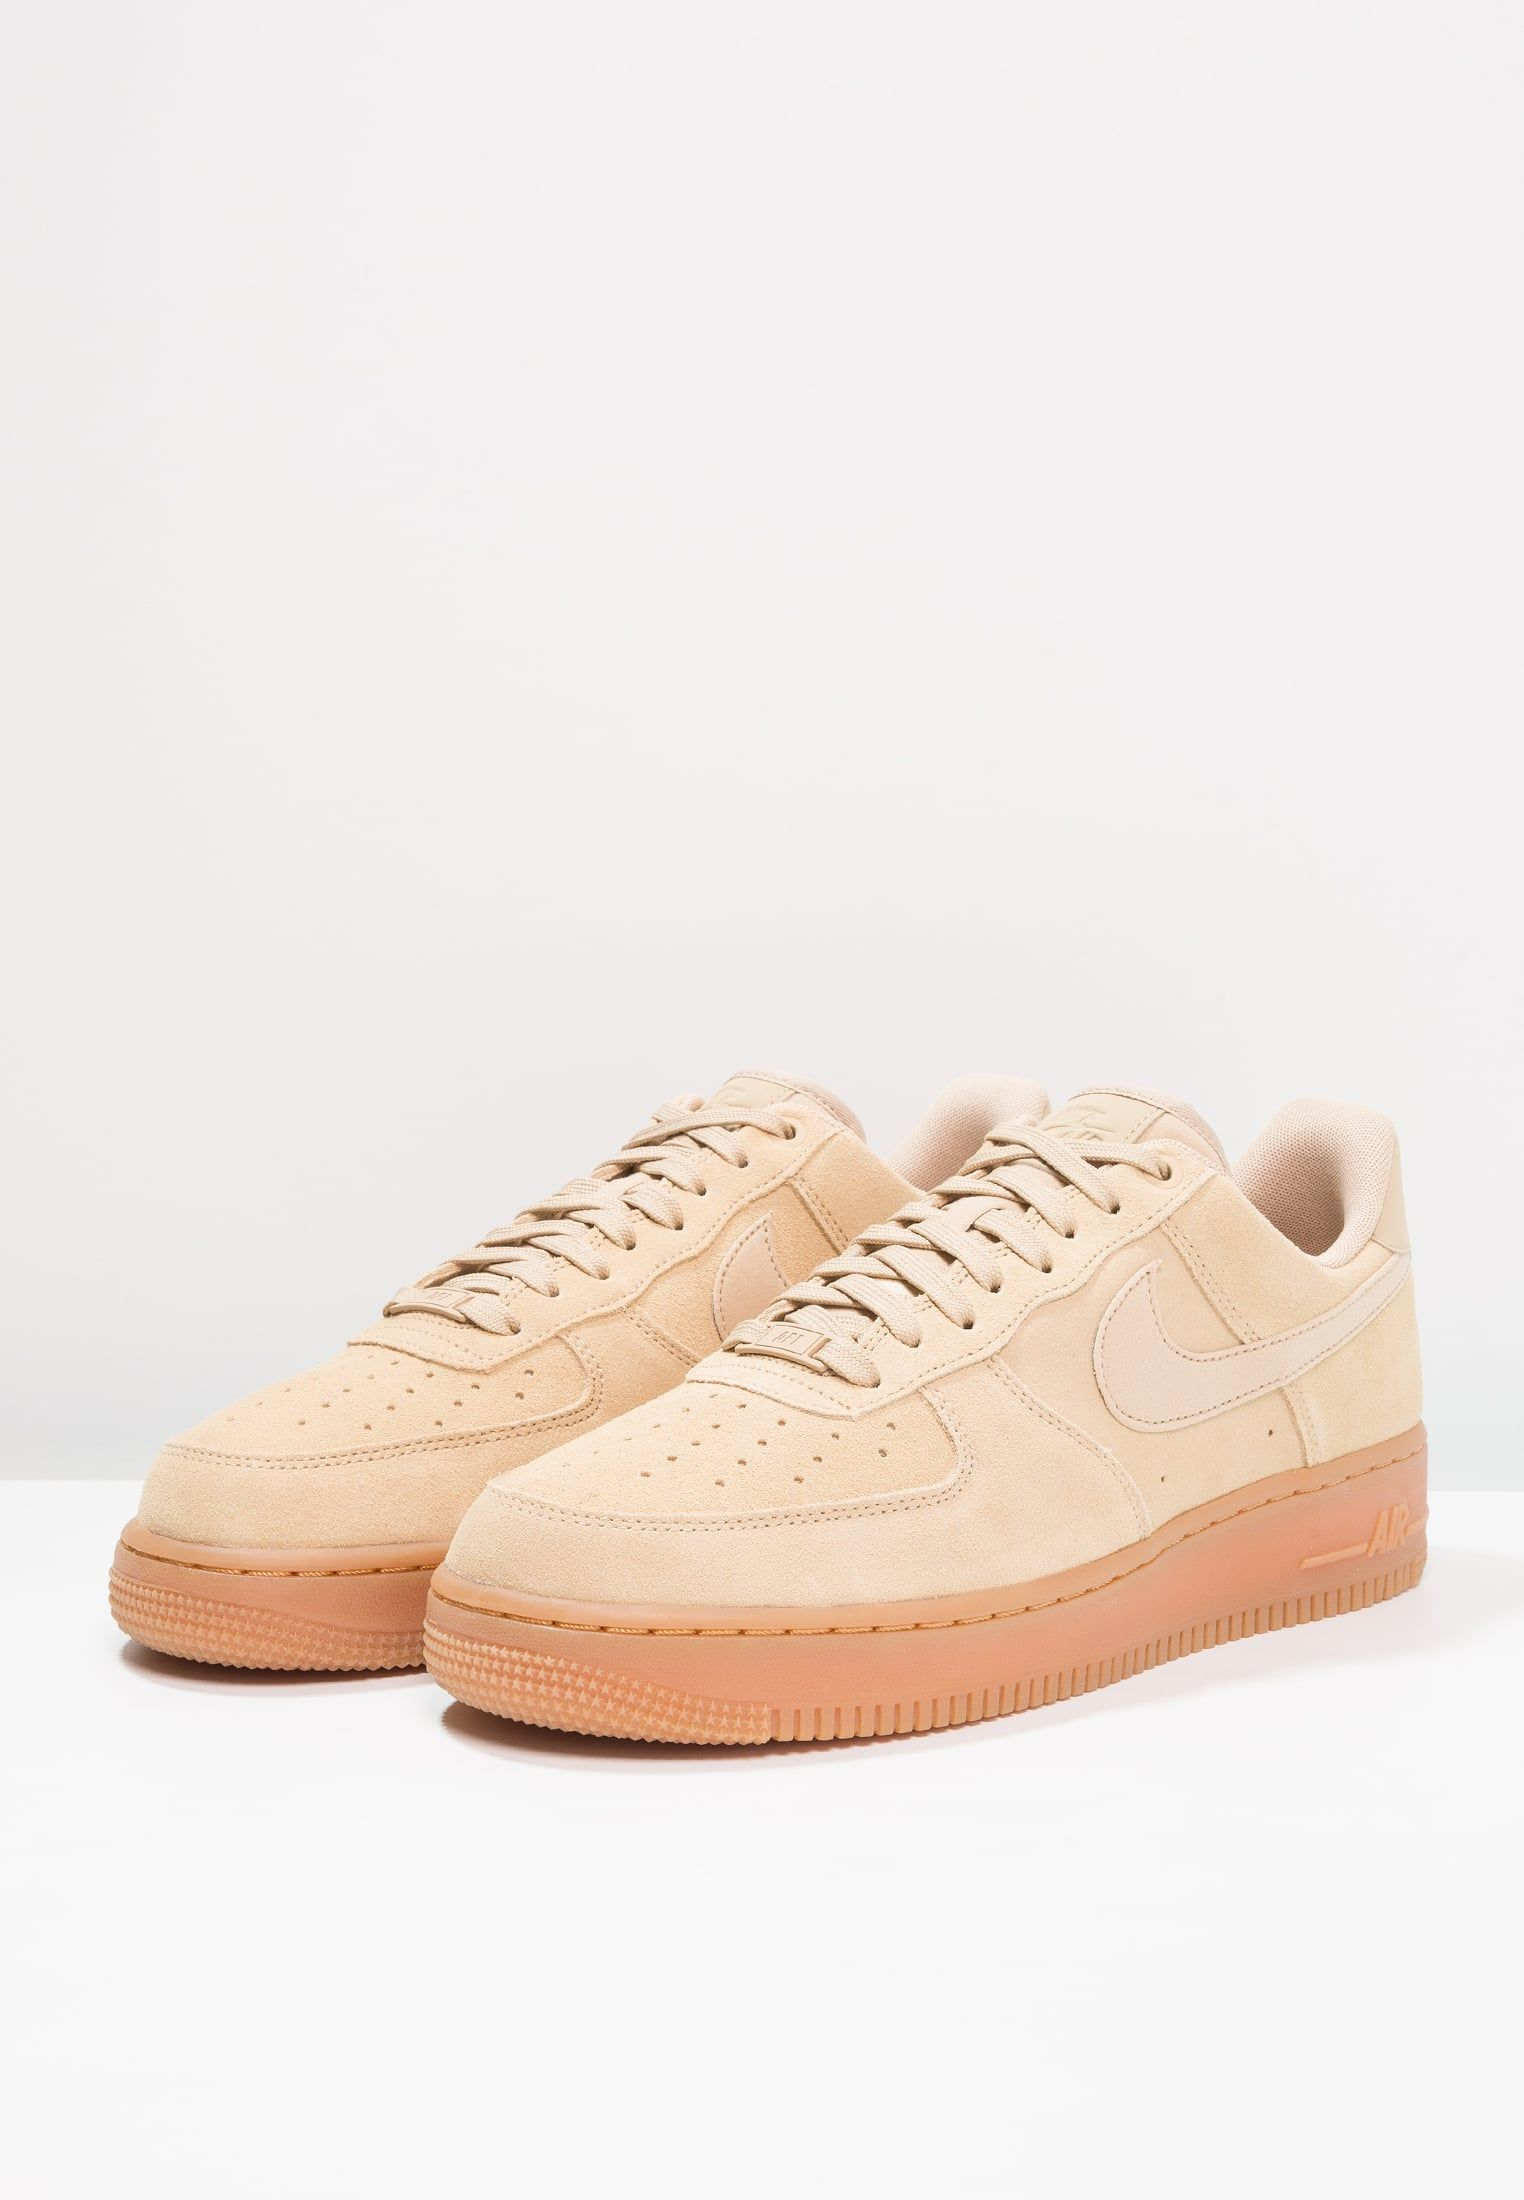 Bestill Nike Sportswear Air Force 1 07 Lv8 Suede Joggesko Mushroom Medium Brown Ivory For Kr 999 00 19 12 17 Med G Nike Sportswear Sneakers Baskets Nike